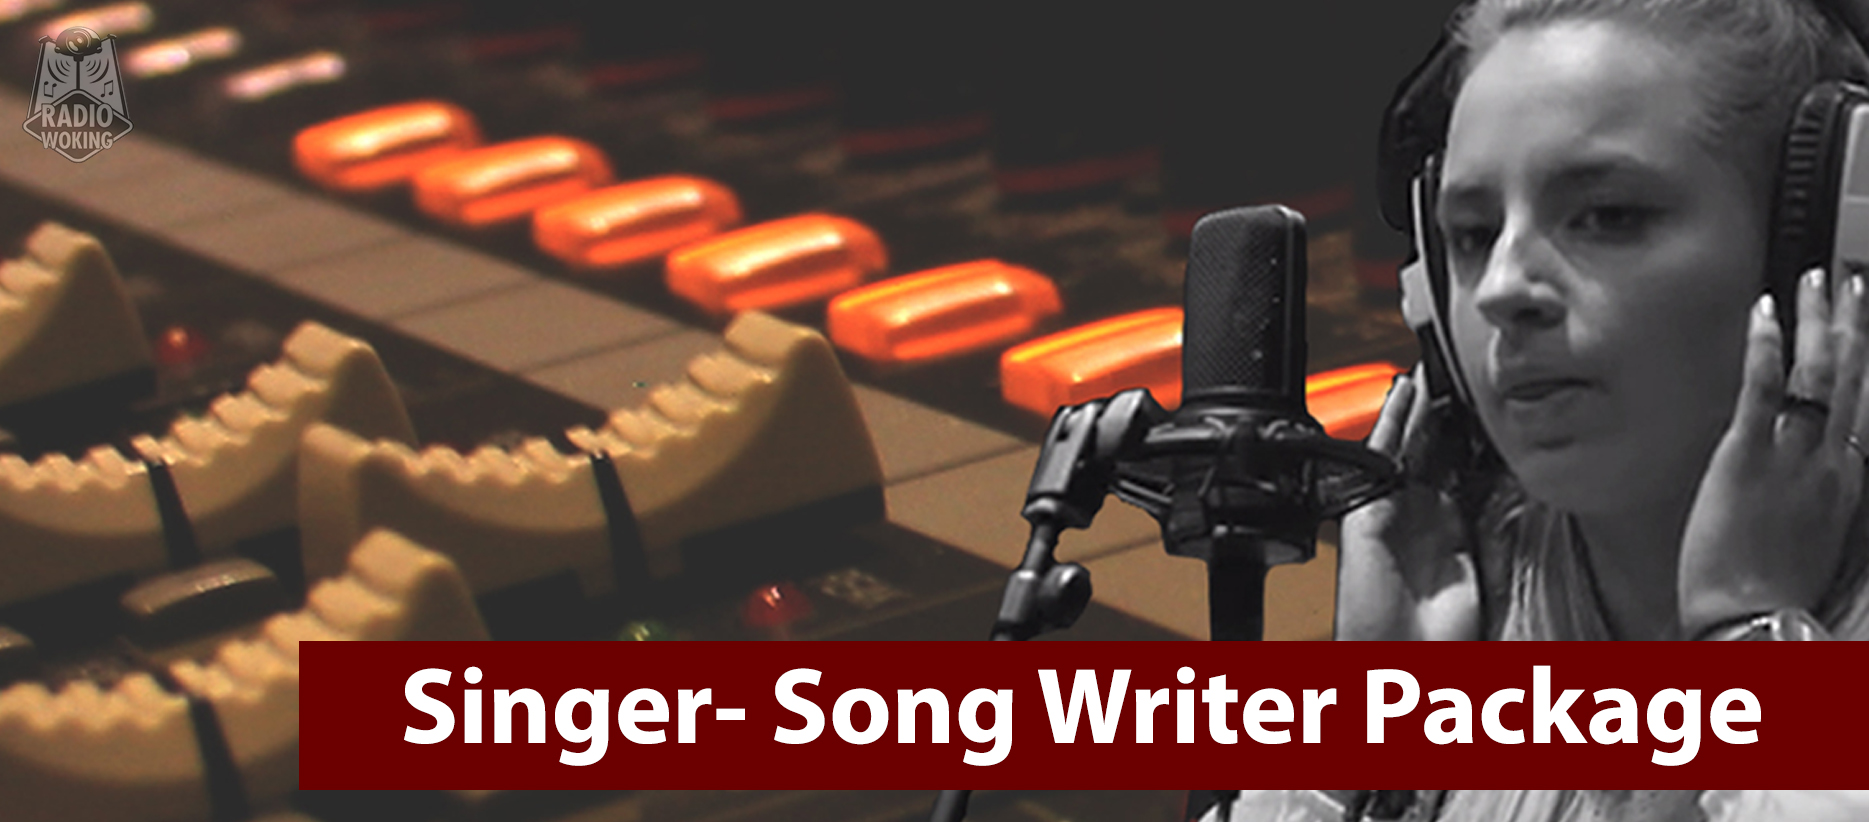 singer-song-writer-banner-2